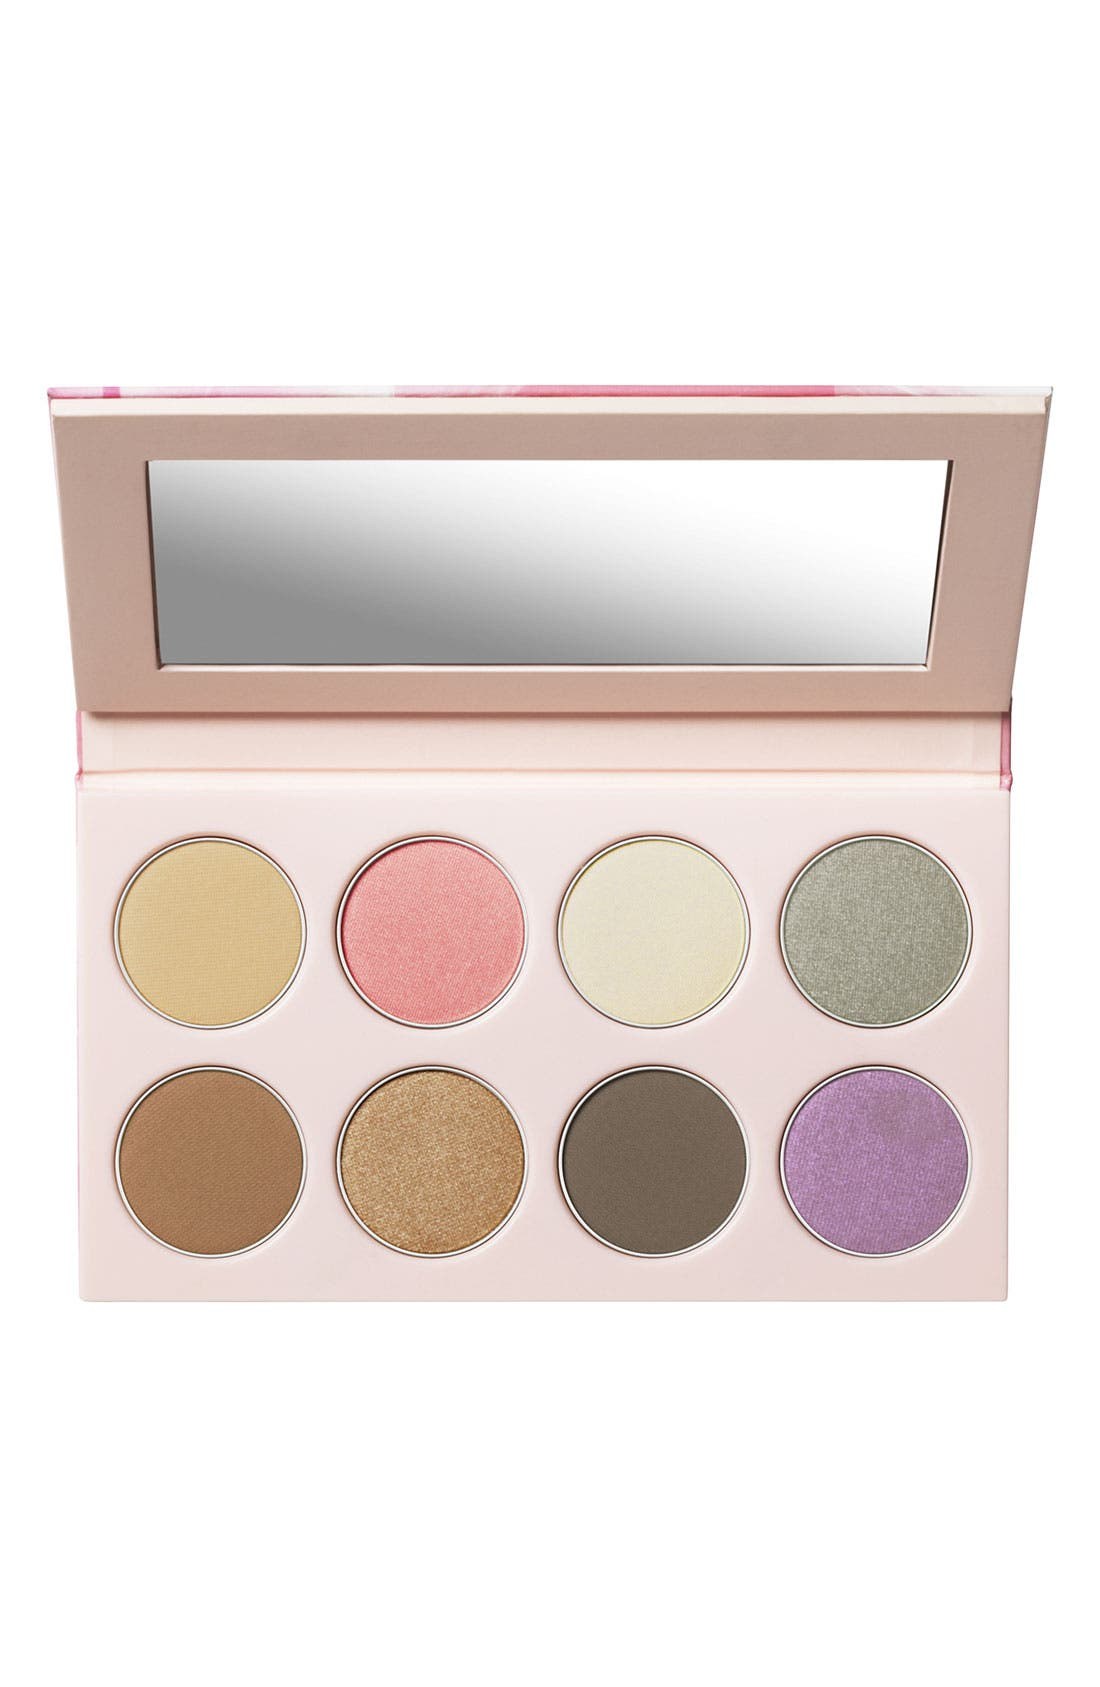 'Be Discovered' Eyeshadow Palette,                             Main thumbnail 1, color,                             000